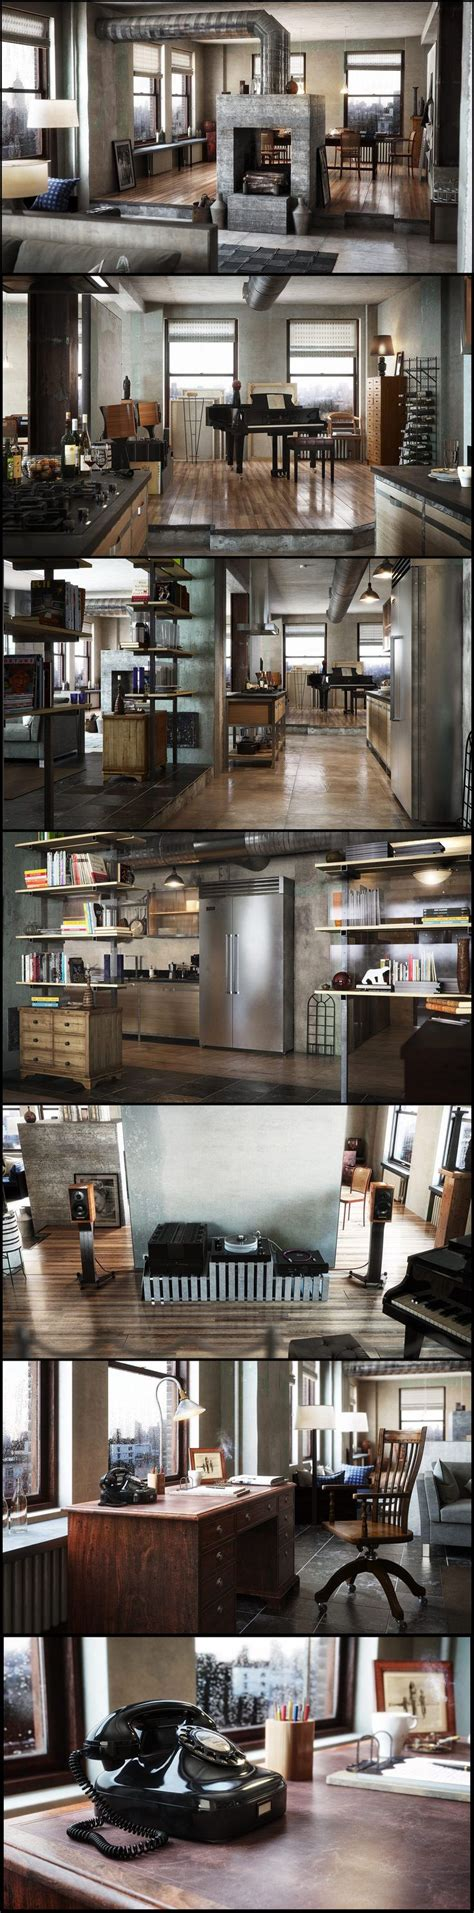 cny home decor new york apartment by latter 1600px x 6459px a interior